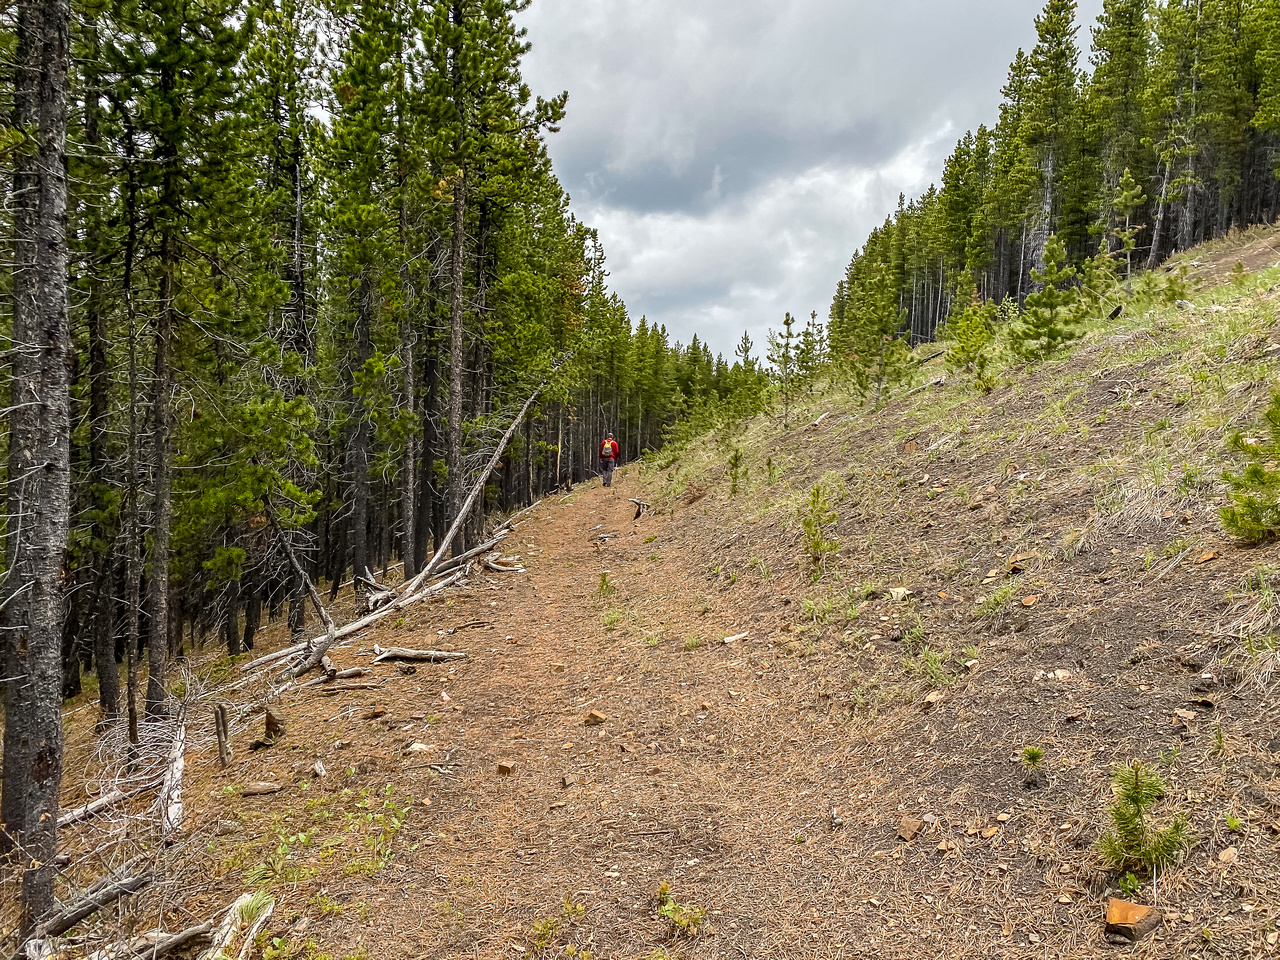 Hiking back along OHV tracks trying to outrun the coming storm.